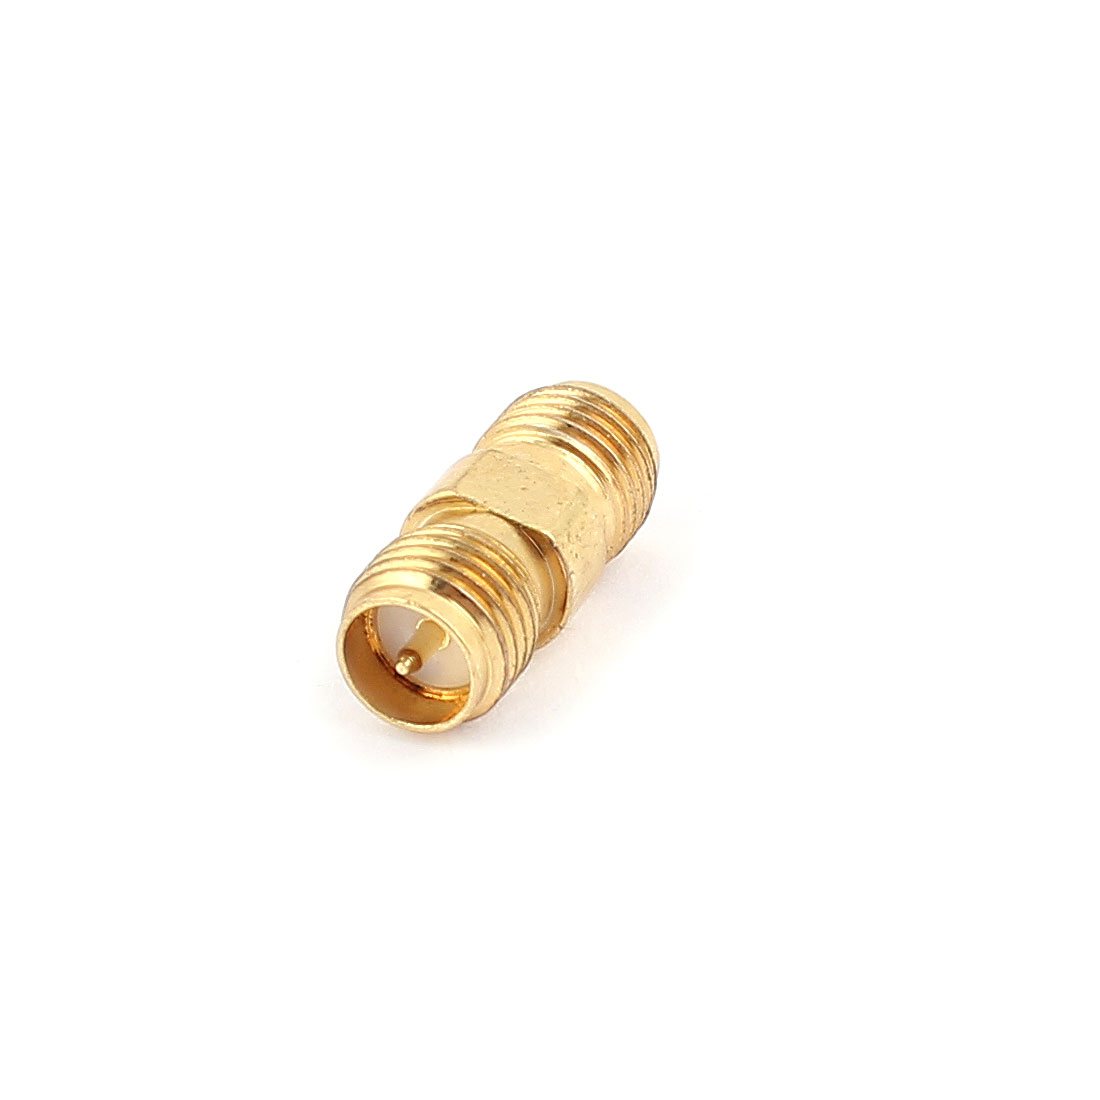 Straight SMA Reverse-polarised Male to Male RF Coaxial Adaptor